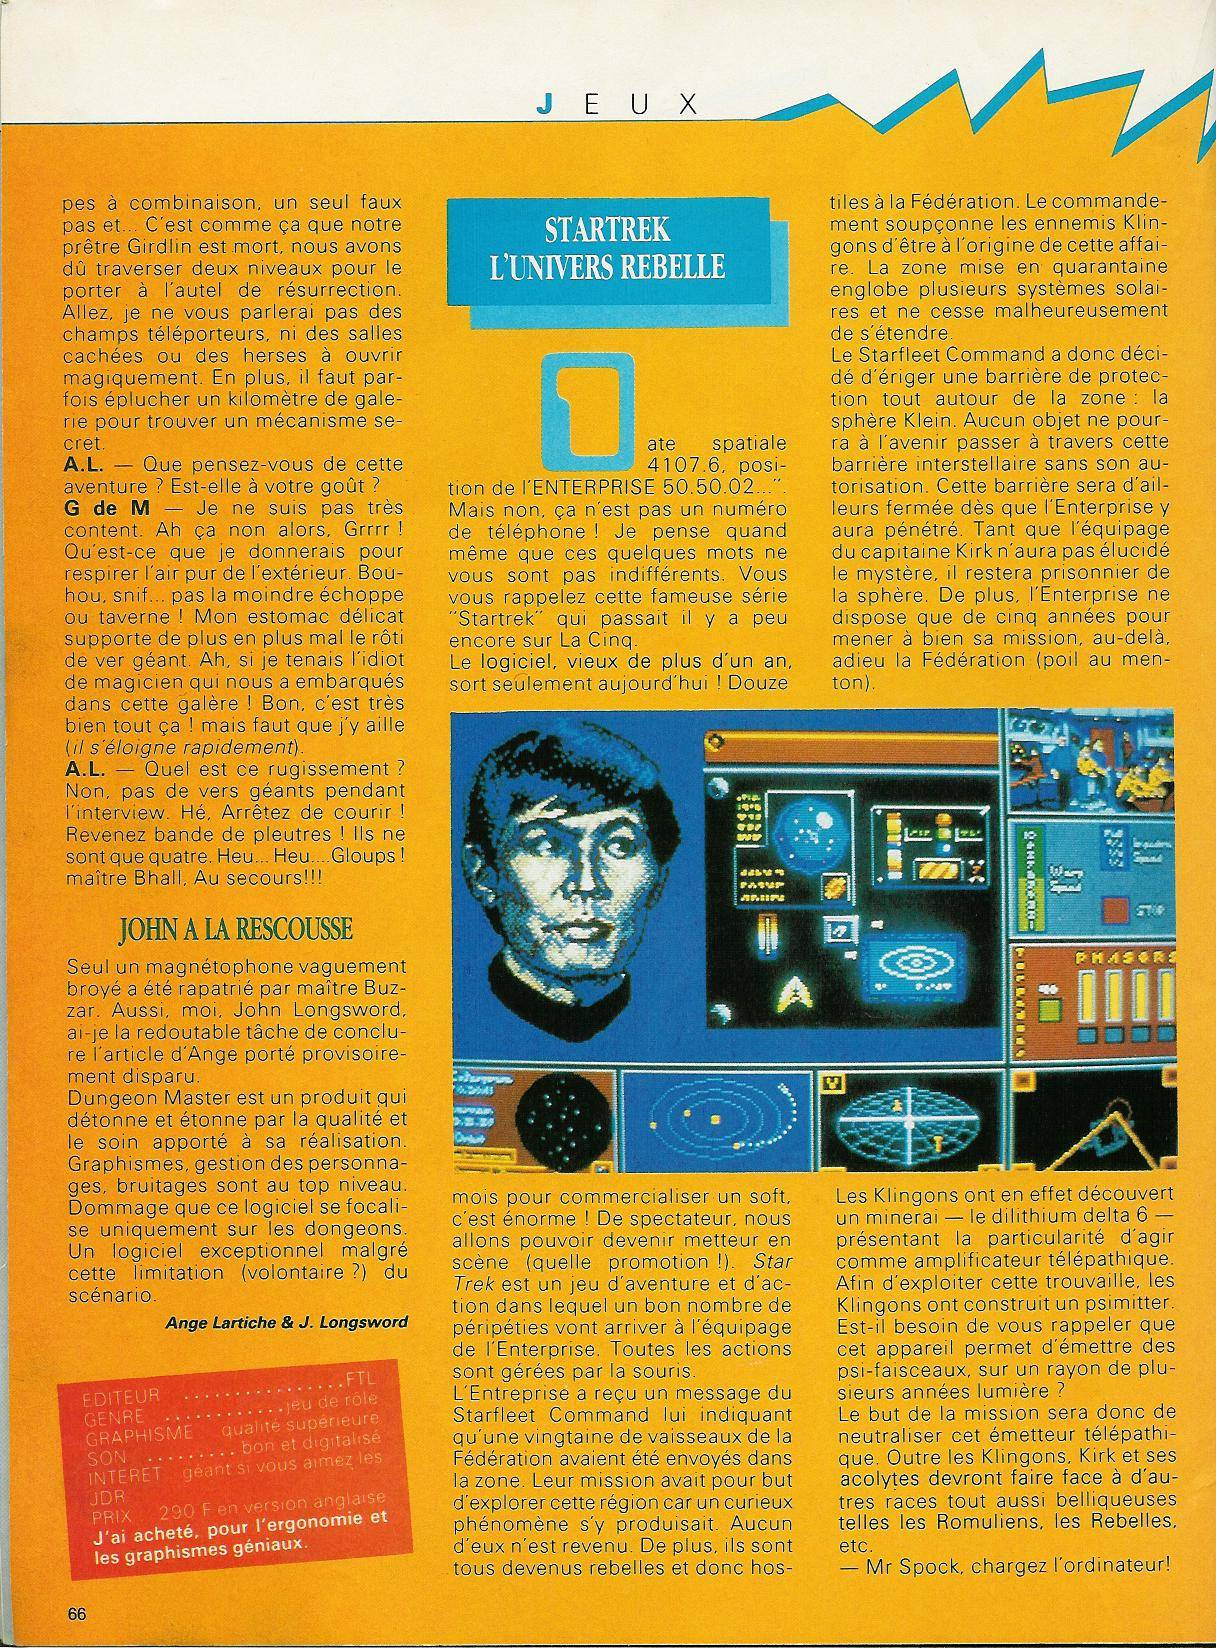 Dungeon Master for Atari ST Review published in French magazine 'Atari 1ST', Issue #8, April 1988, Page 66